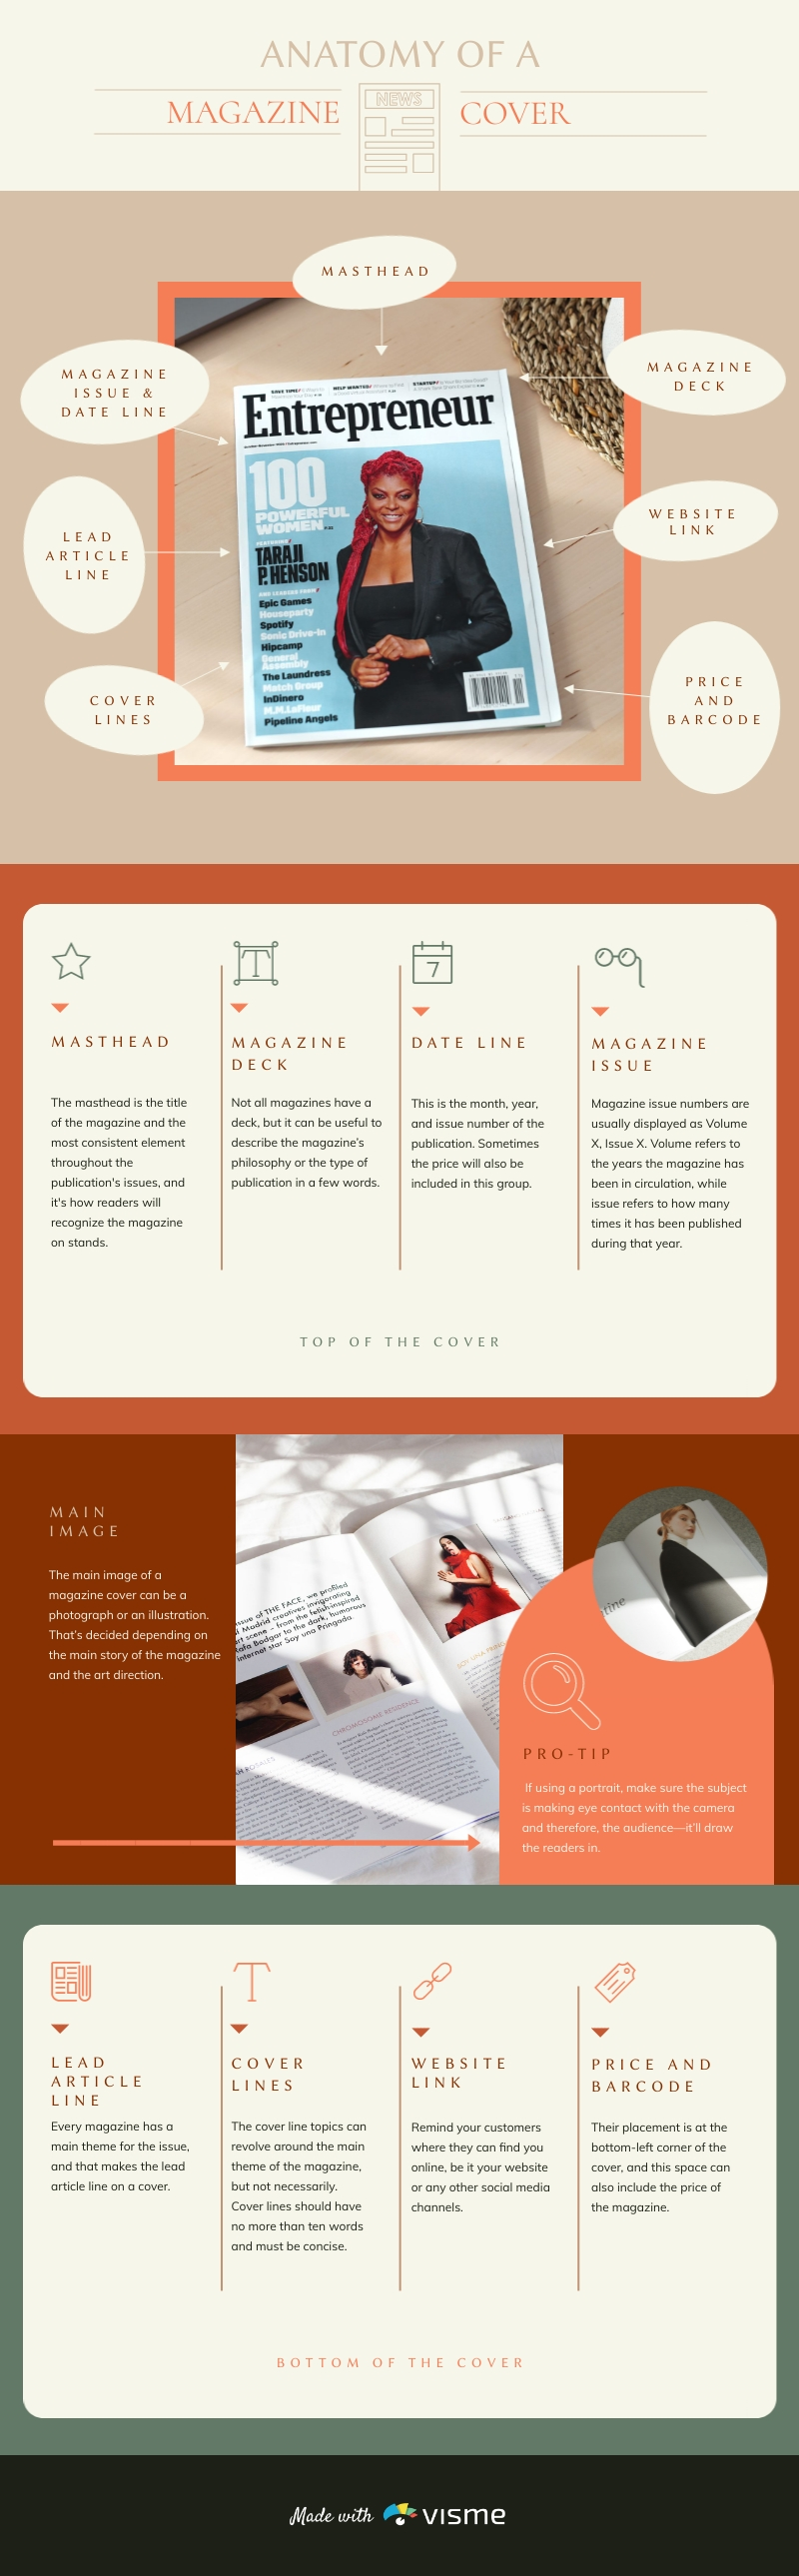 Anatomy of a Magazine Cover - Infographic Template